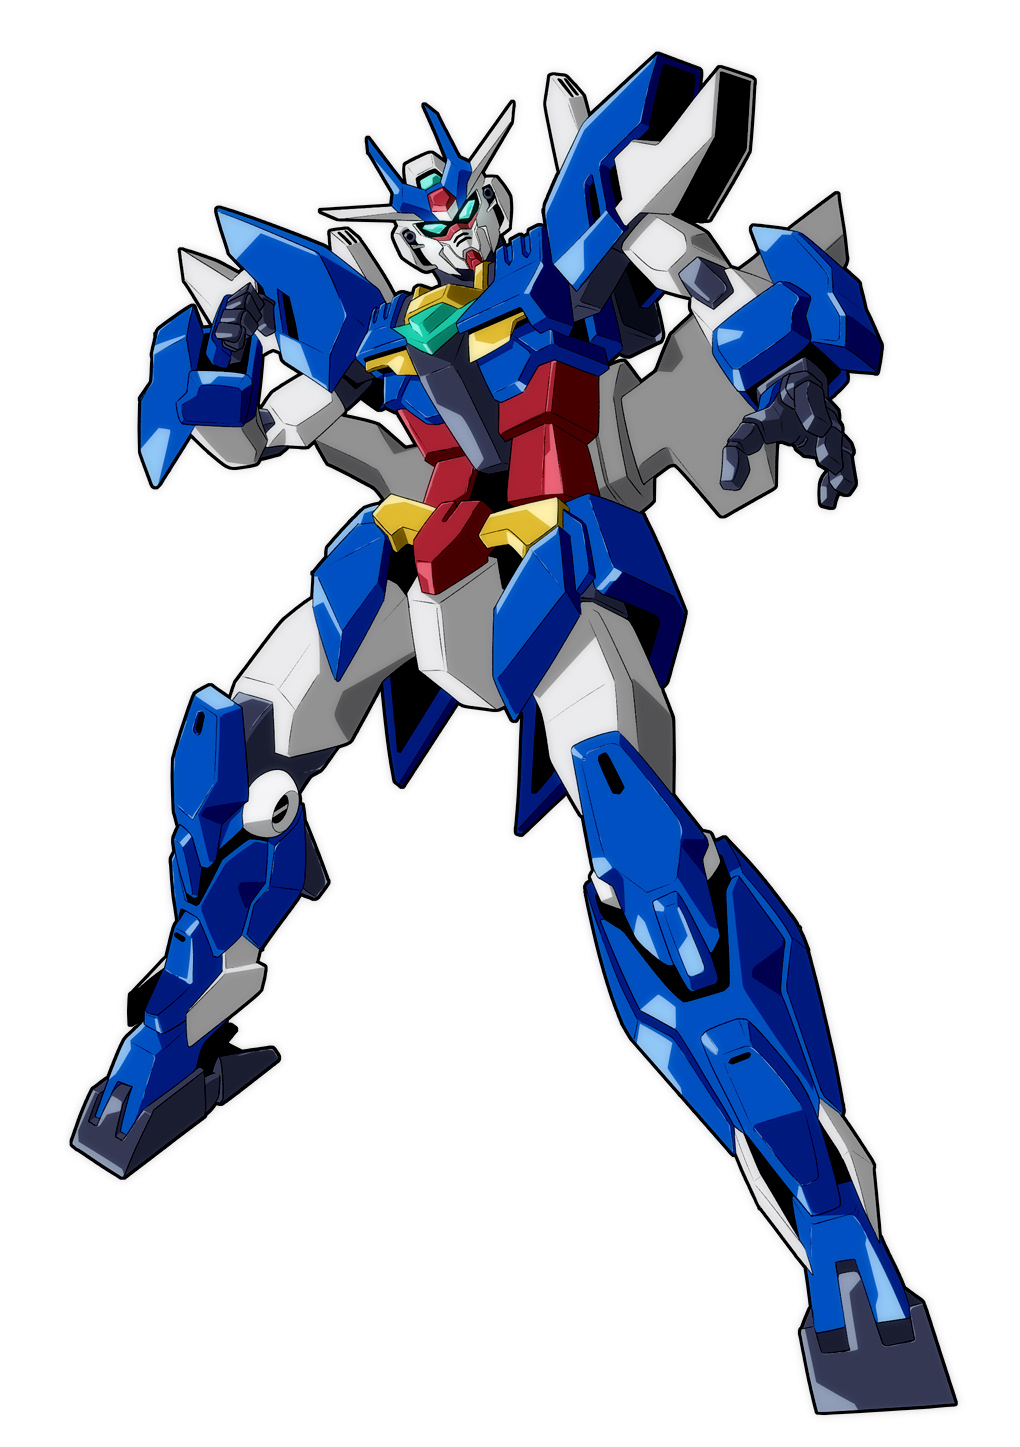 clenched_hand dynamic_pose earthree_gundam green_eyes gundam gundam_build_divers gundam_build_divers_re:rise highres looking_at_viewer mecha no_humans open_hand solo v-fin white_background yu-fukaya-p